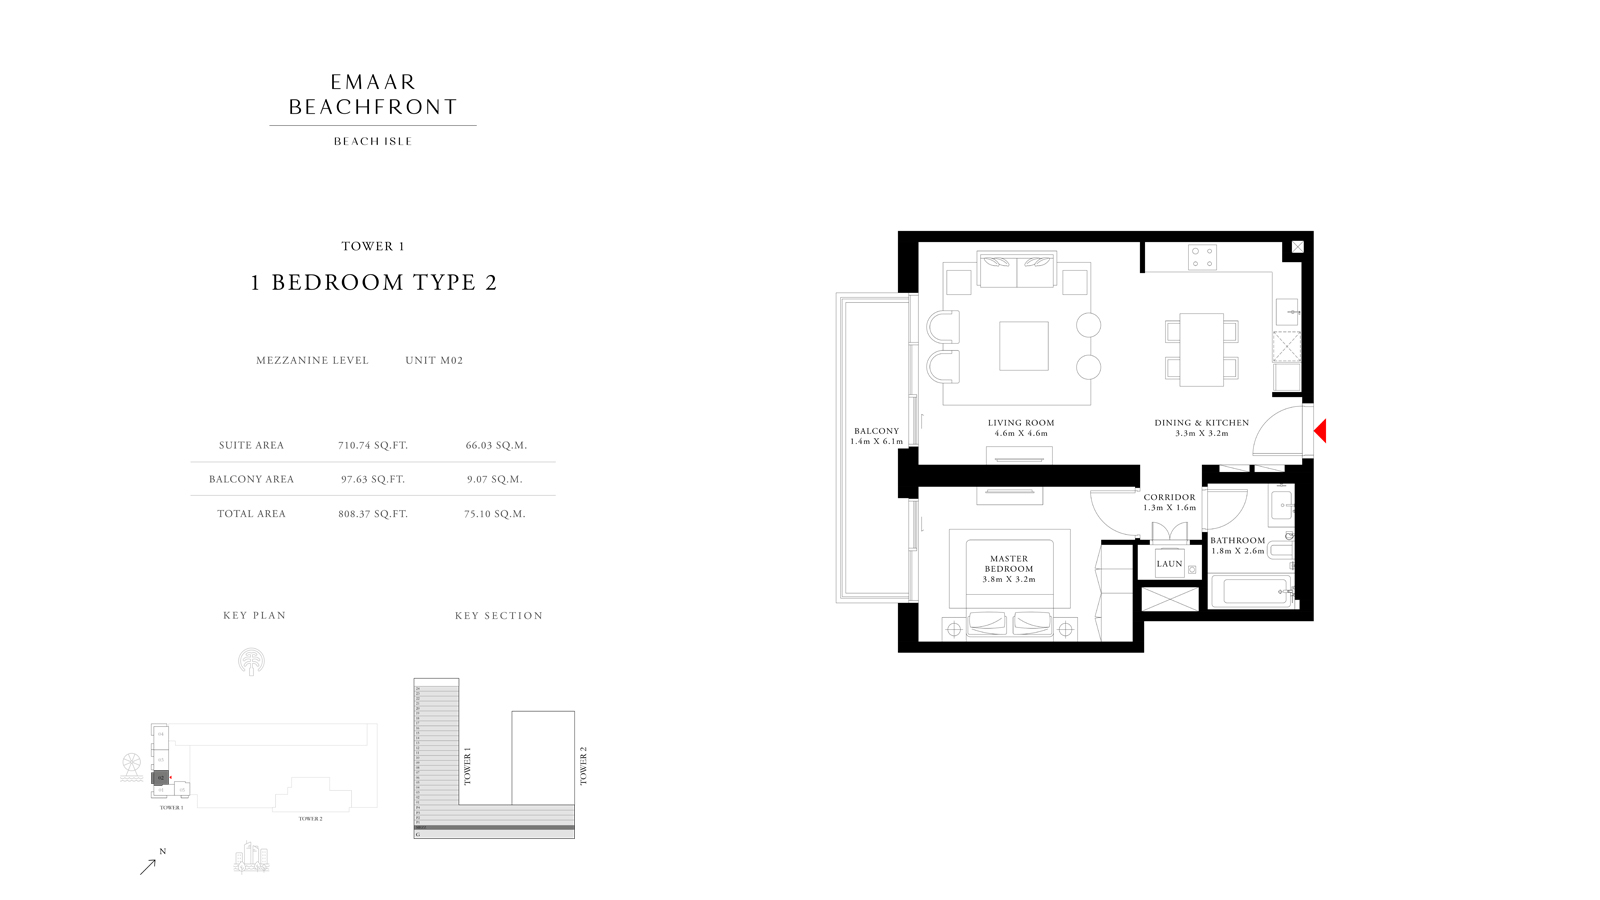 1 Bedroom Type 2 Tower 1, Size 808 sq ft